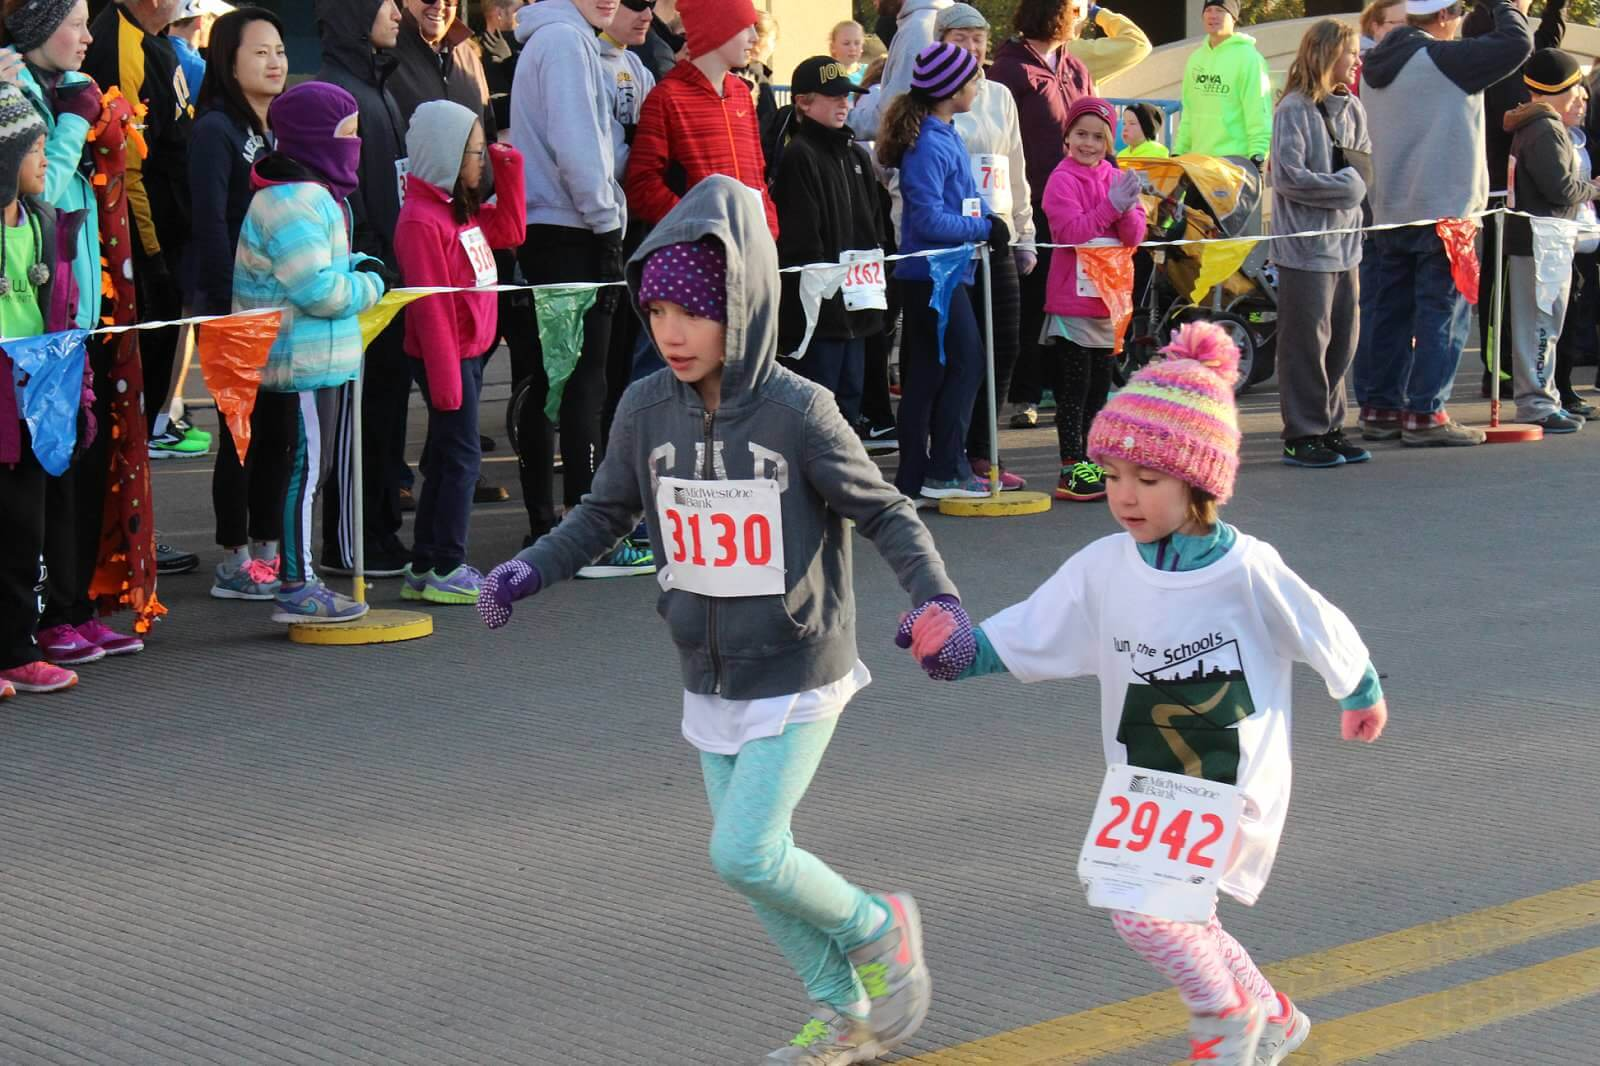 Two young runners